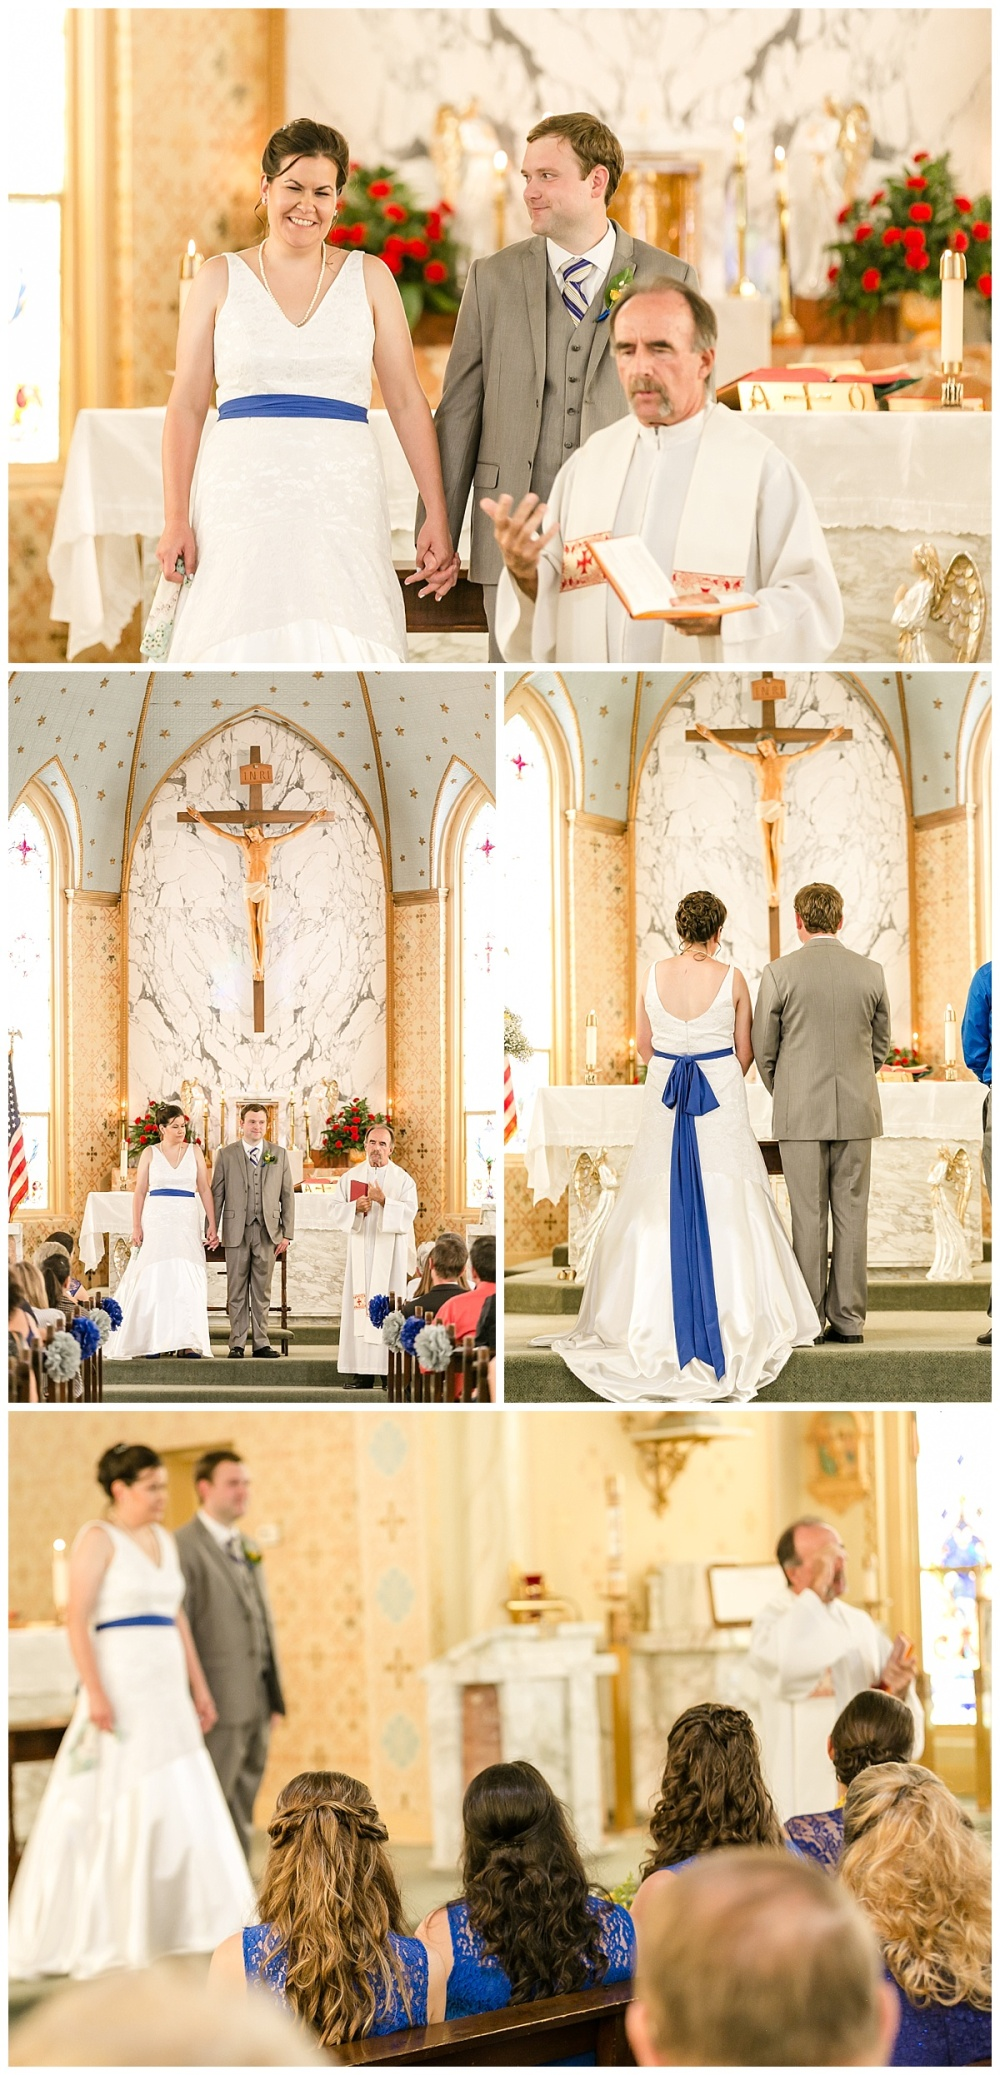 Texas-Wedding-Photographer-La-Coste-Our-Lady-Of-Grace-Church-Bride-Groom-Lego-Theme-Carly-Barton-Photography_0056.jpg